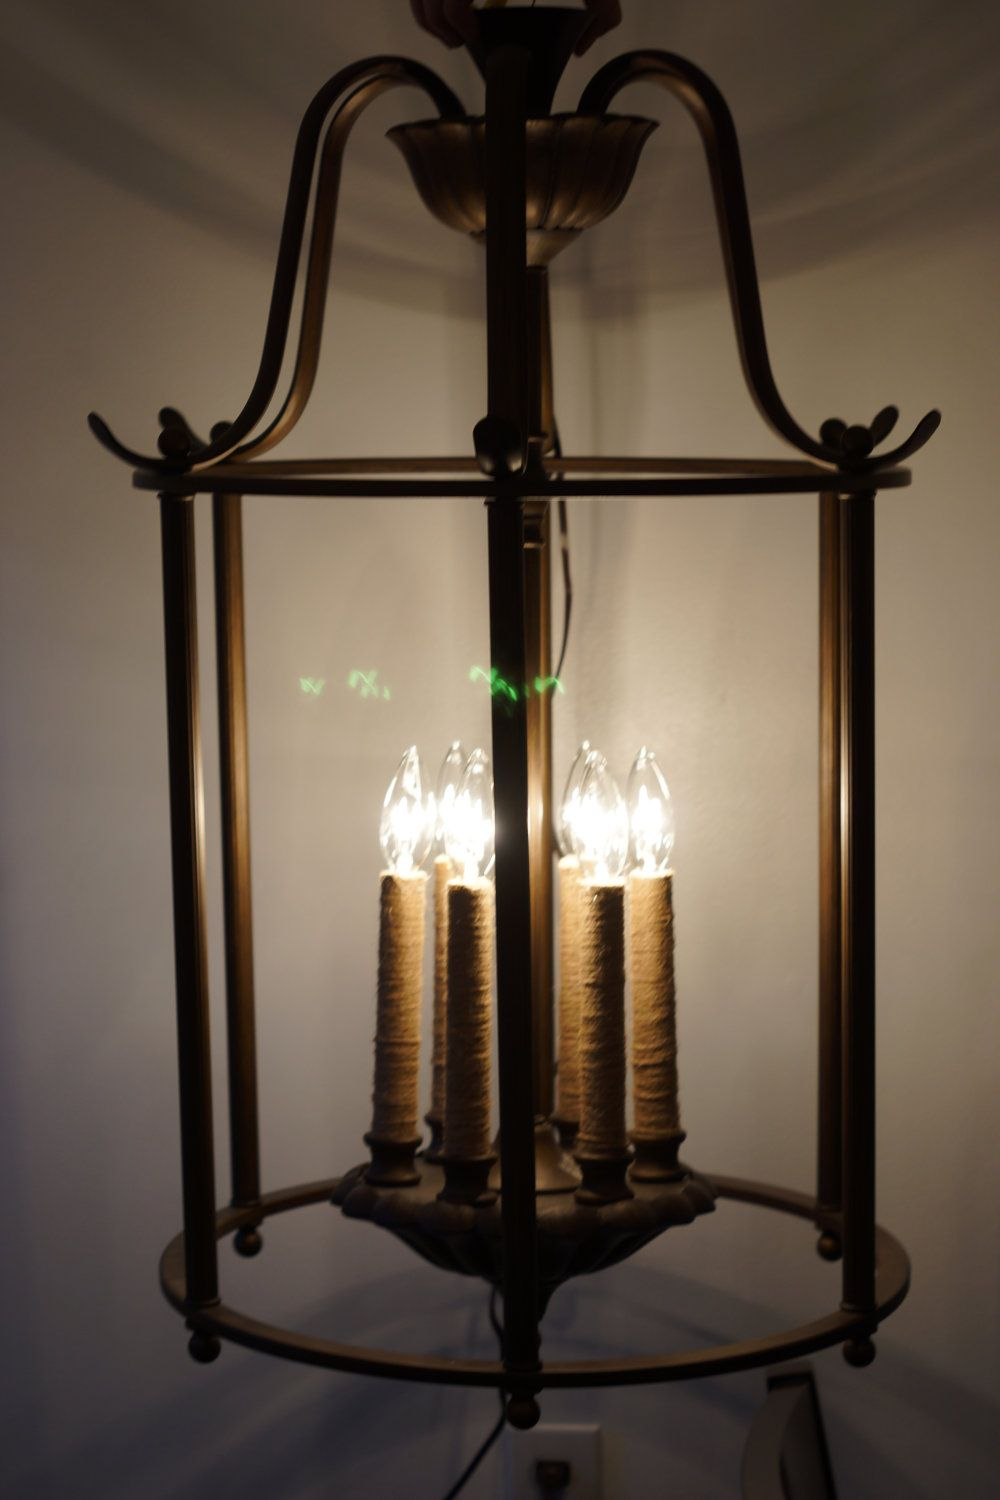 Lighting Basement Washroom Stairs: Large Hanging Entryway Ceiling 6 Candle Light Fixture $250